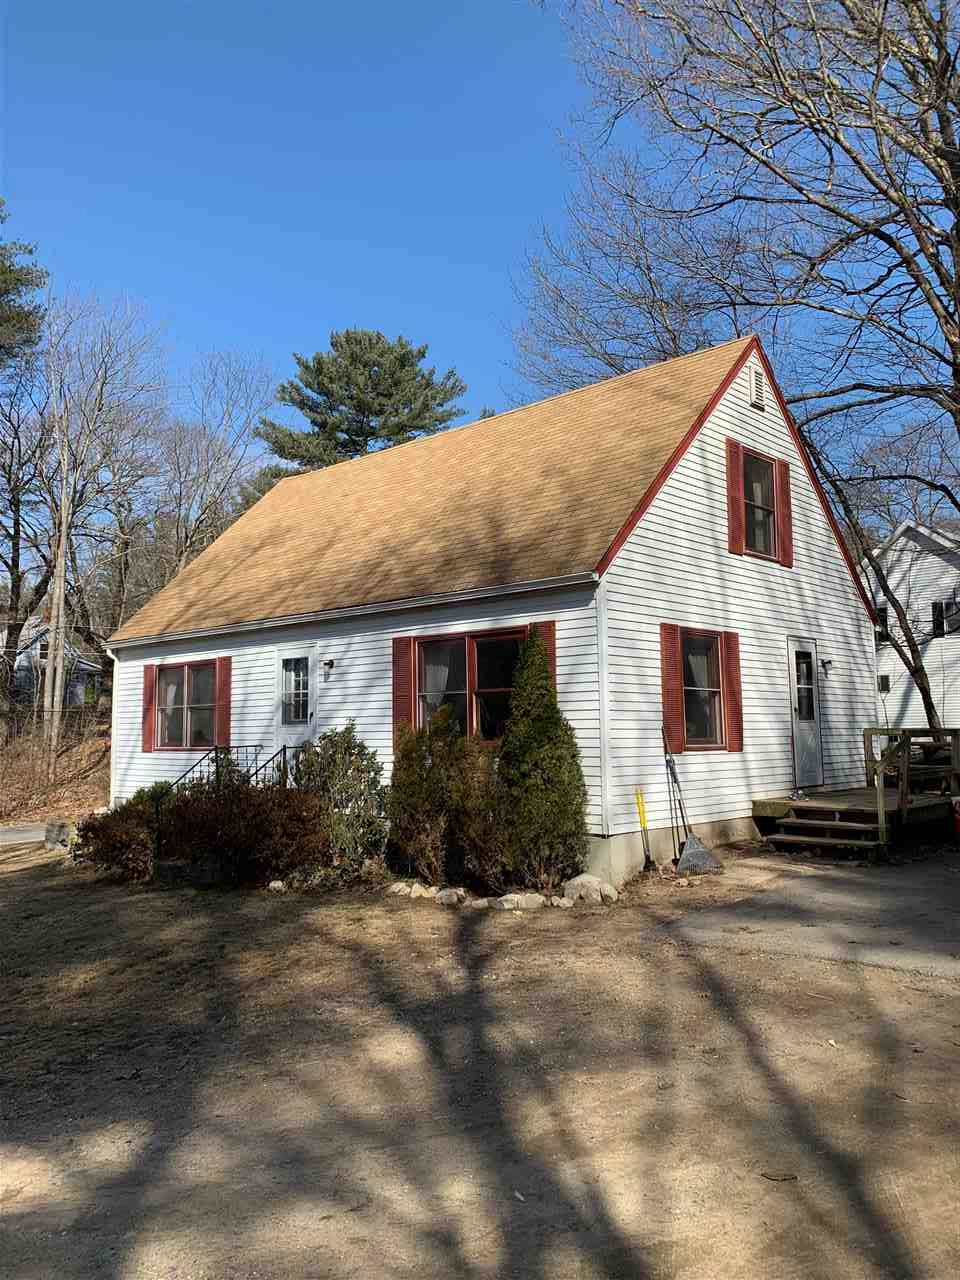 MLS 4745721: 9 Rule Street, Keene NH